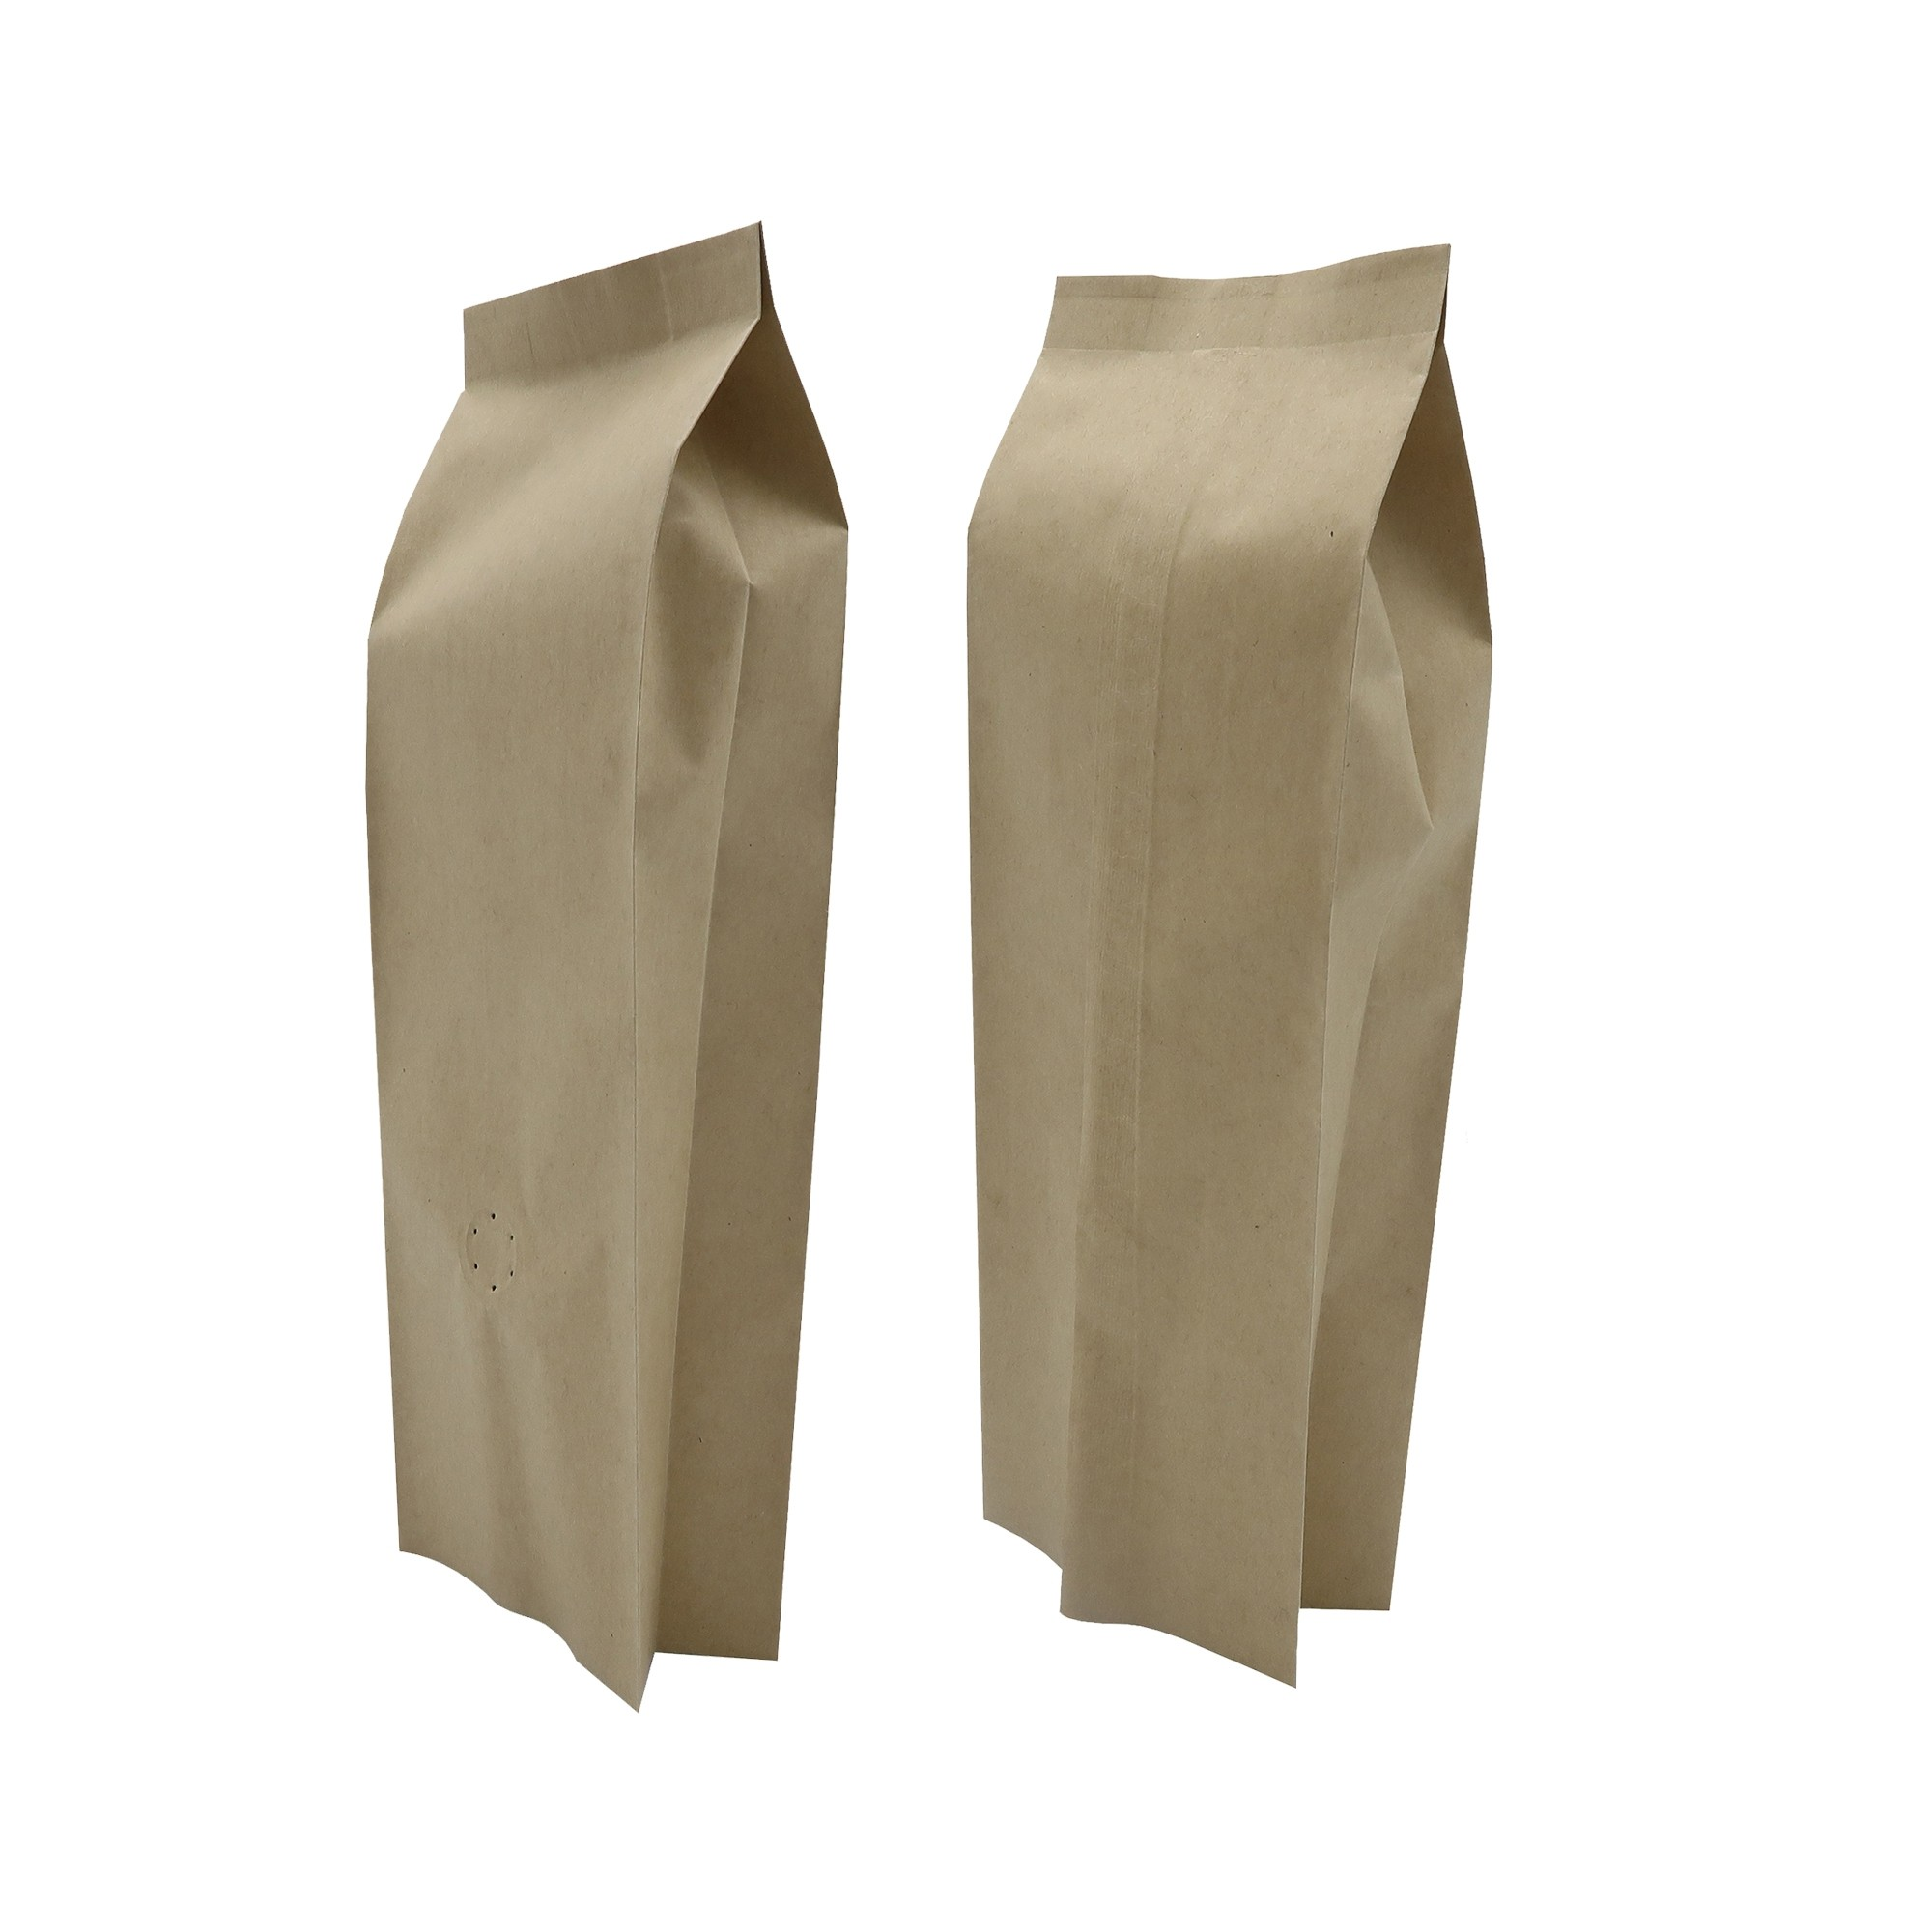 8oz Brown Kraft Side Gusseted Coffee Storage Aluminum Bags with Degassing Valve (100 Bags/Lot)